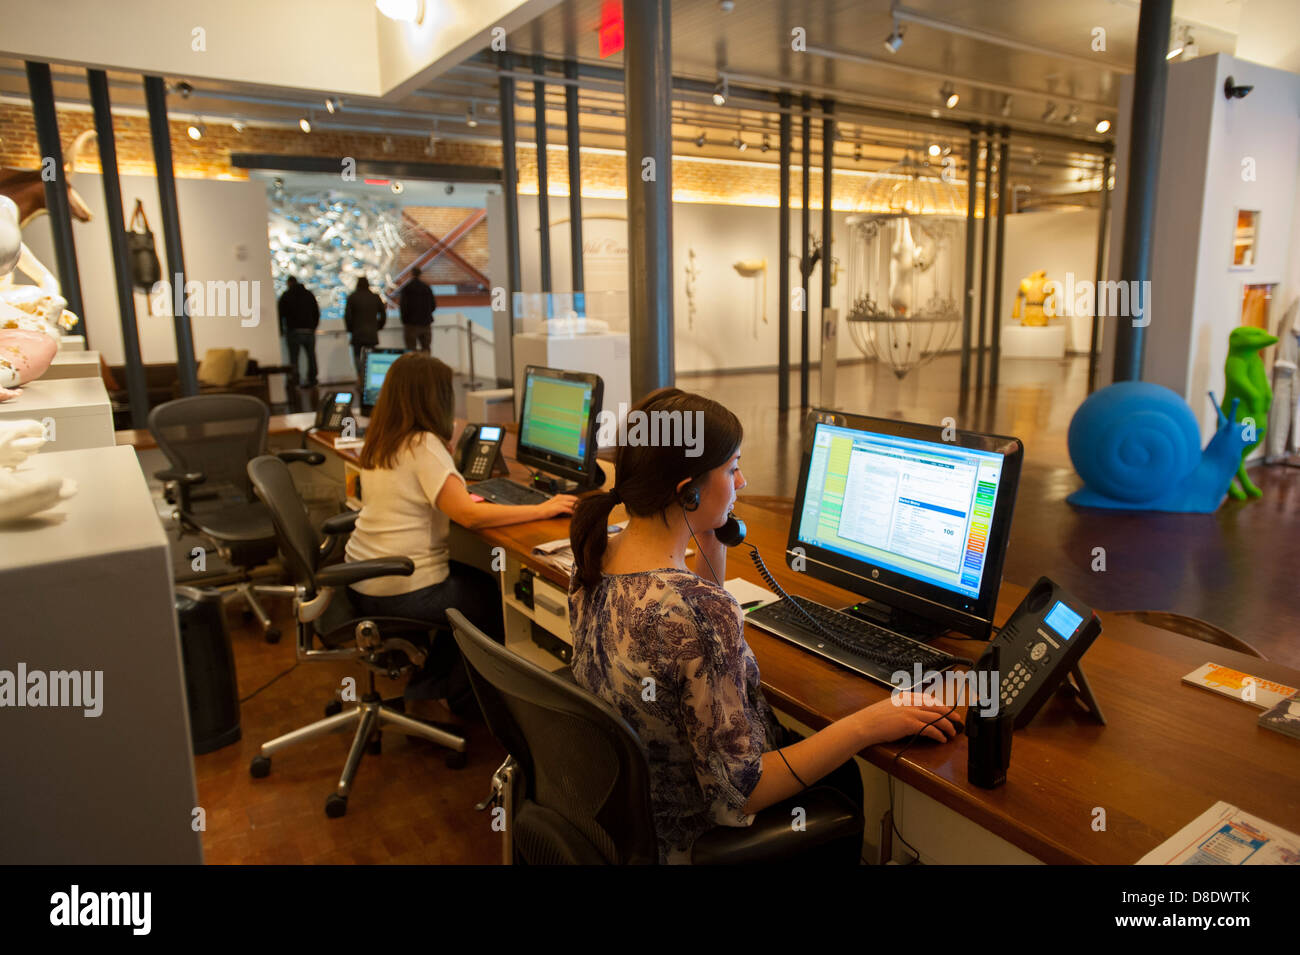 USA Kentucky KY Louisville lobby of the 21C Museum Hotel - receptionists - Stock Image